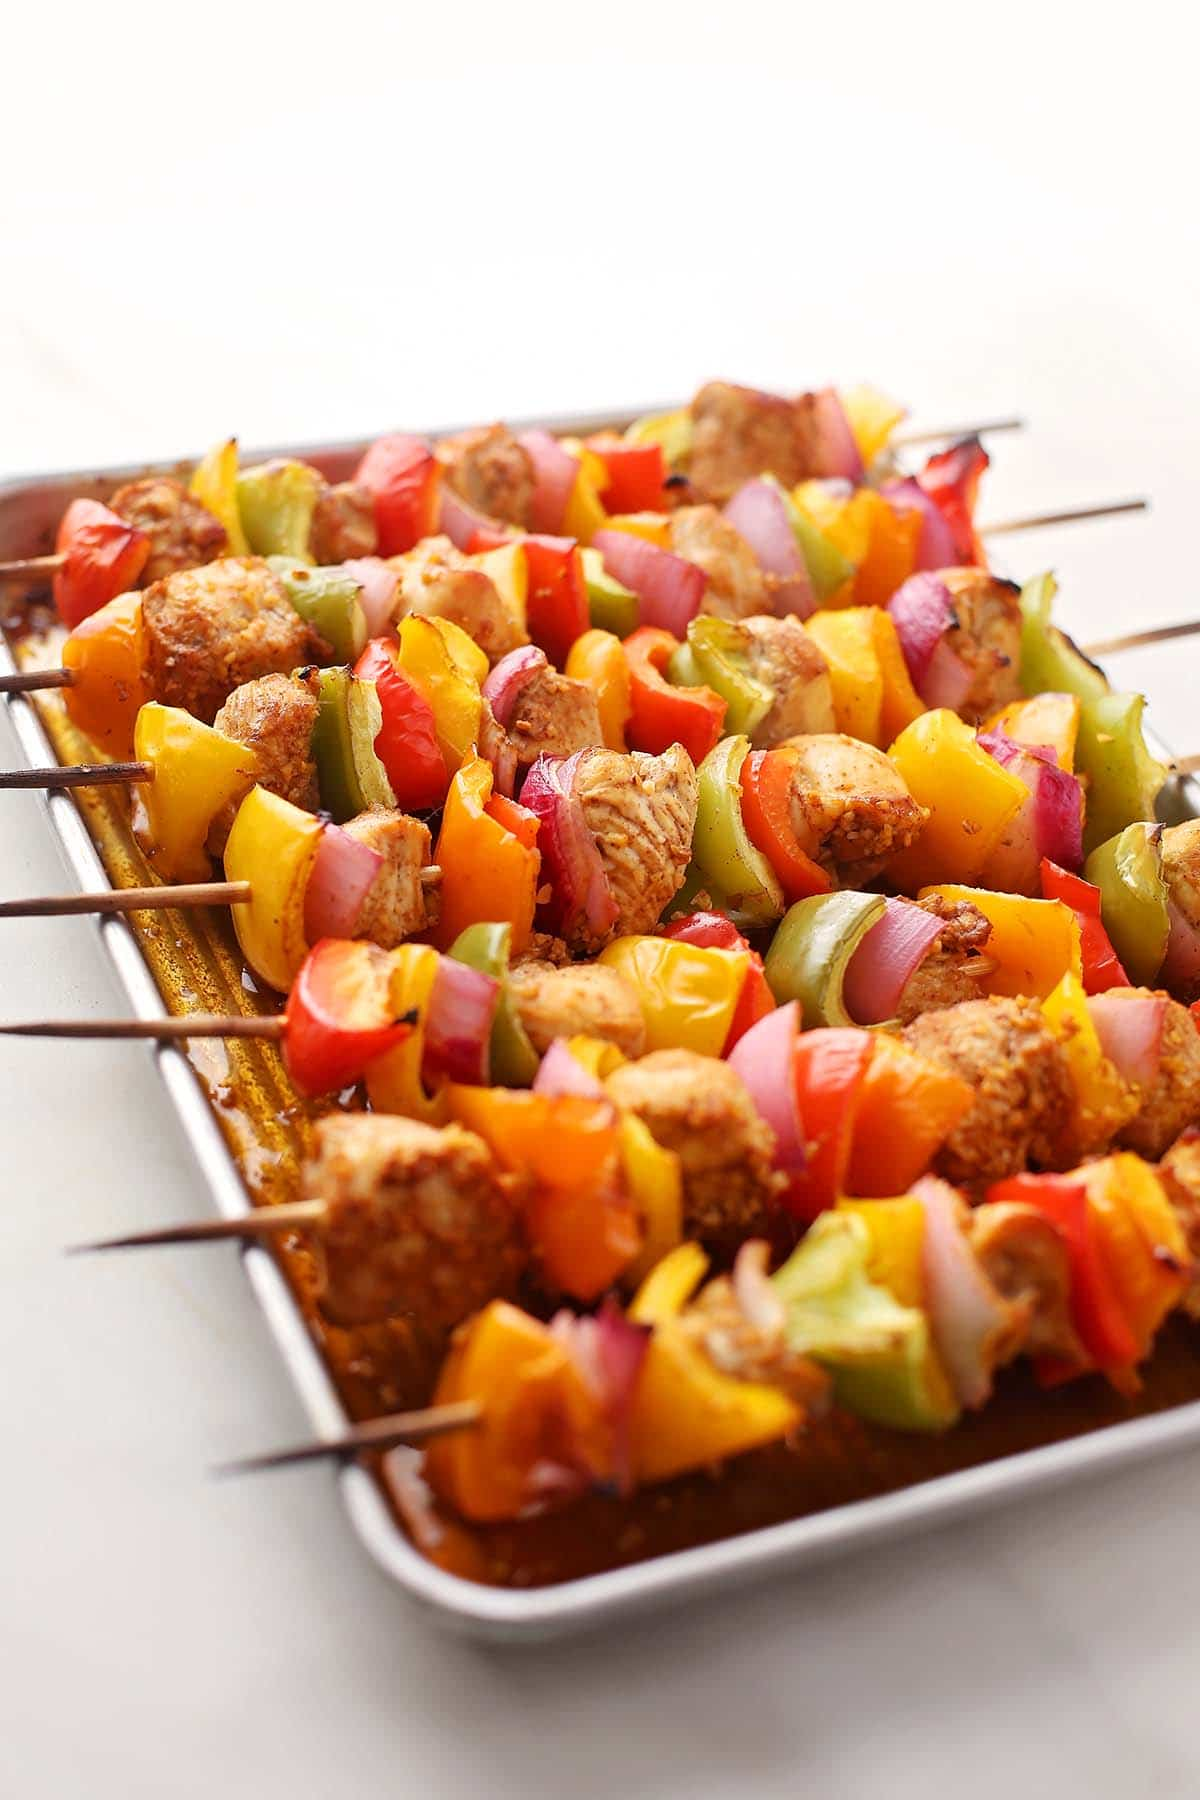 sheet pan with cooked chicken skewers with colorful vegetables